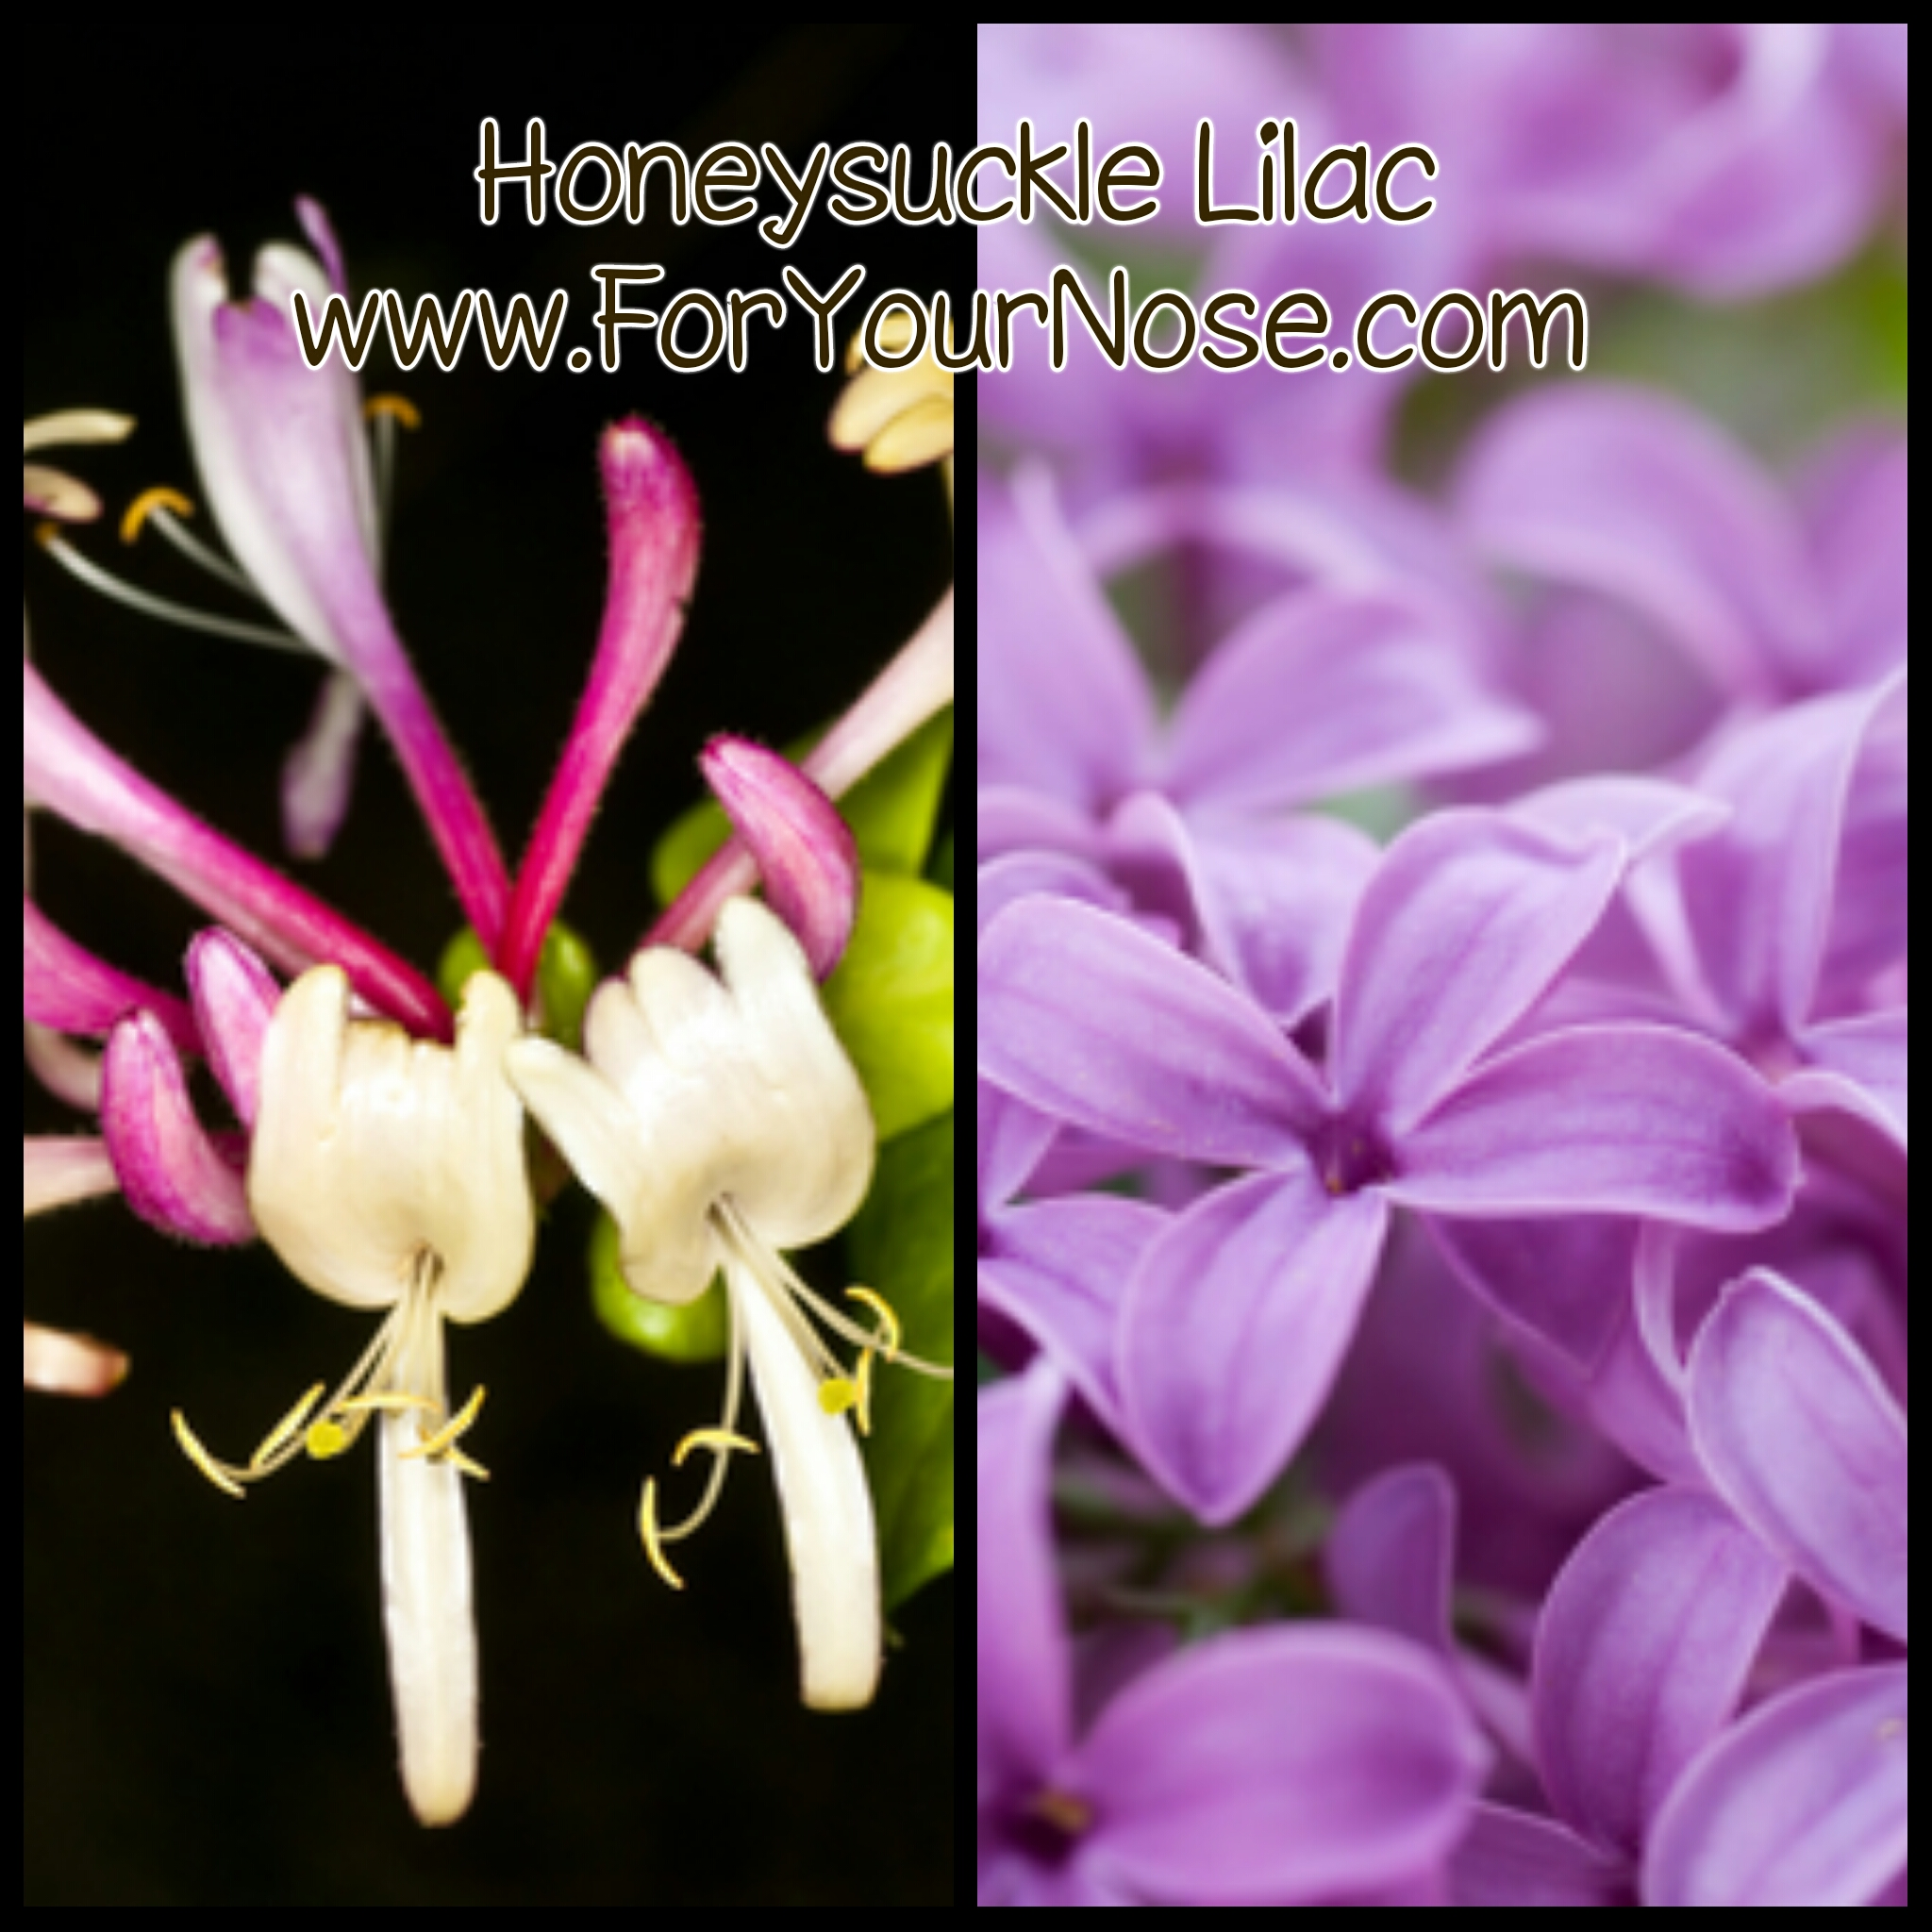 Honeysuckle Lilac fragrance